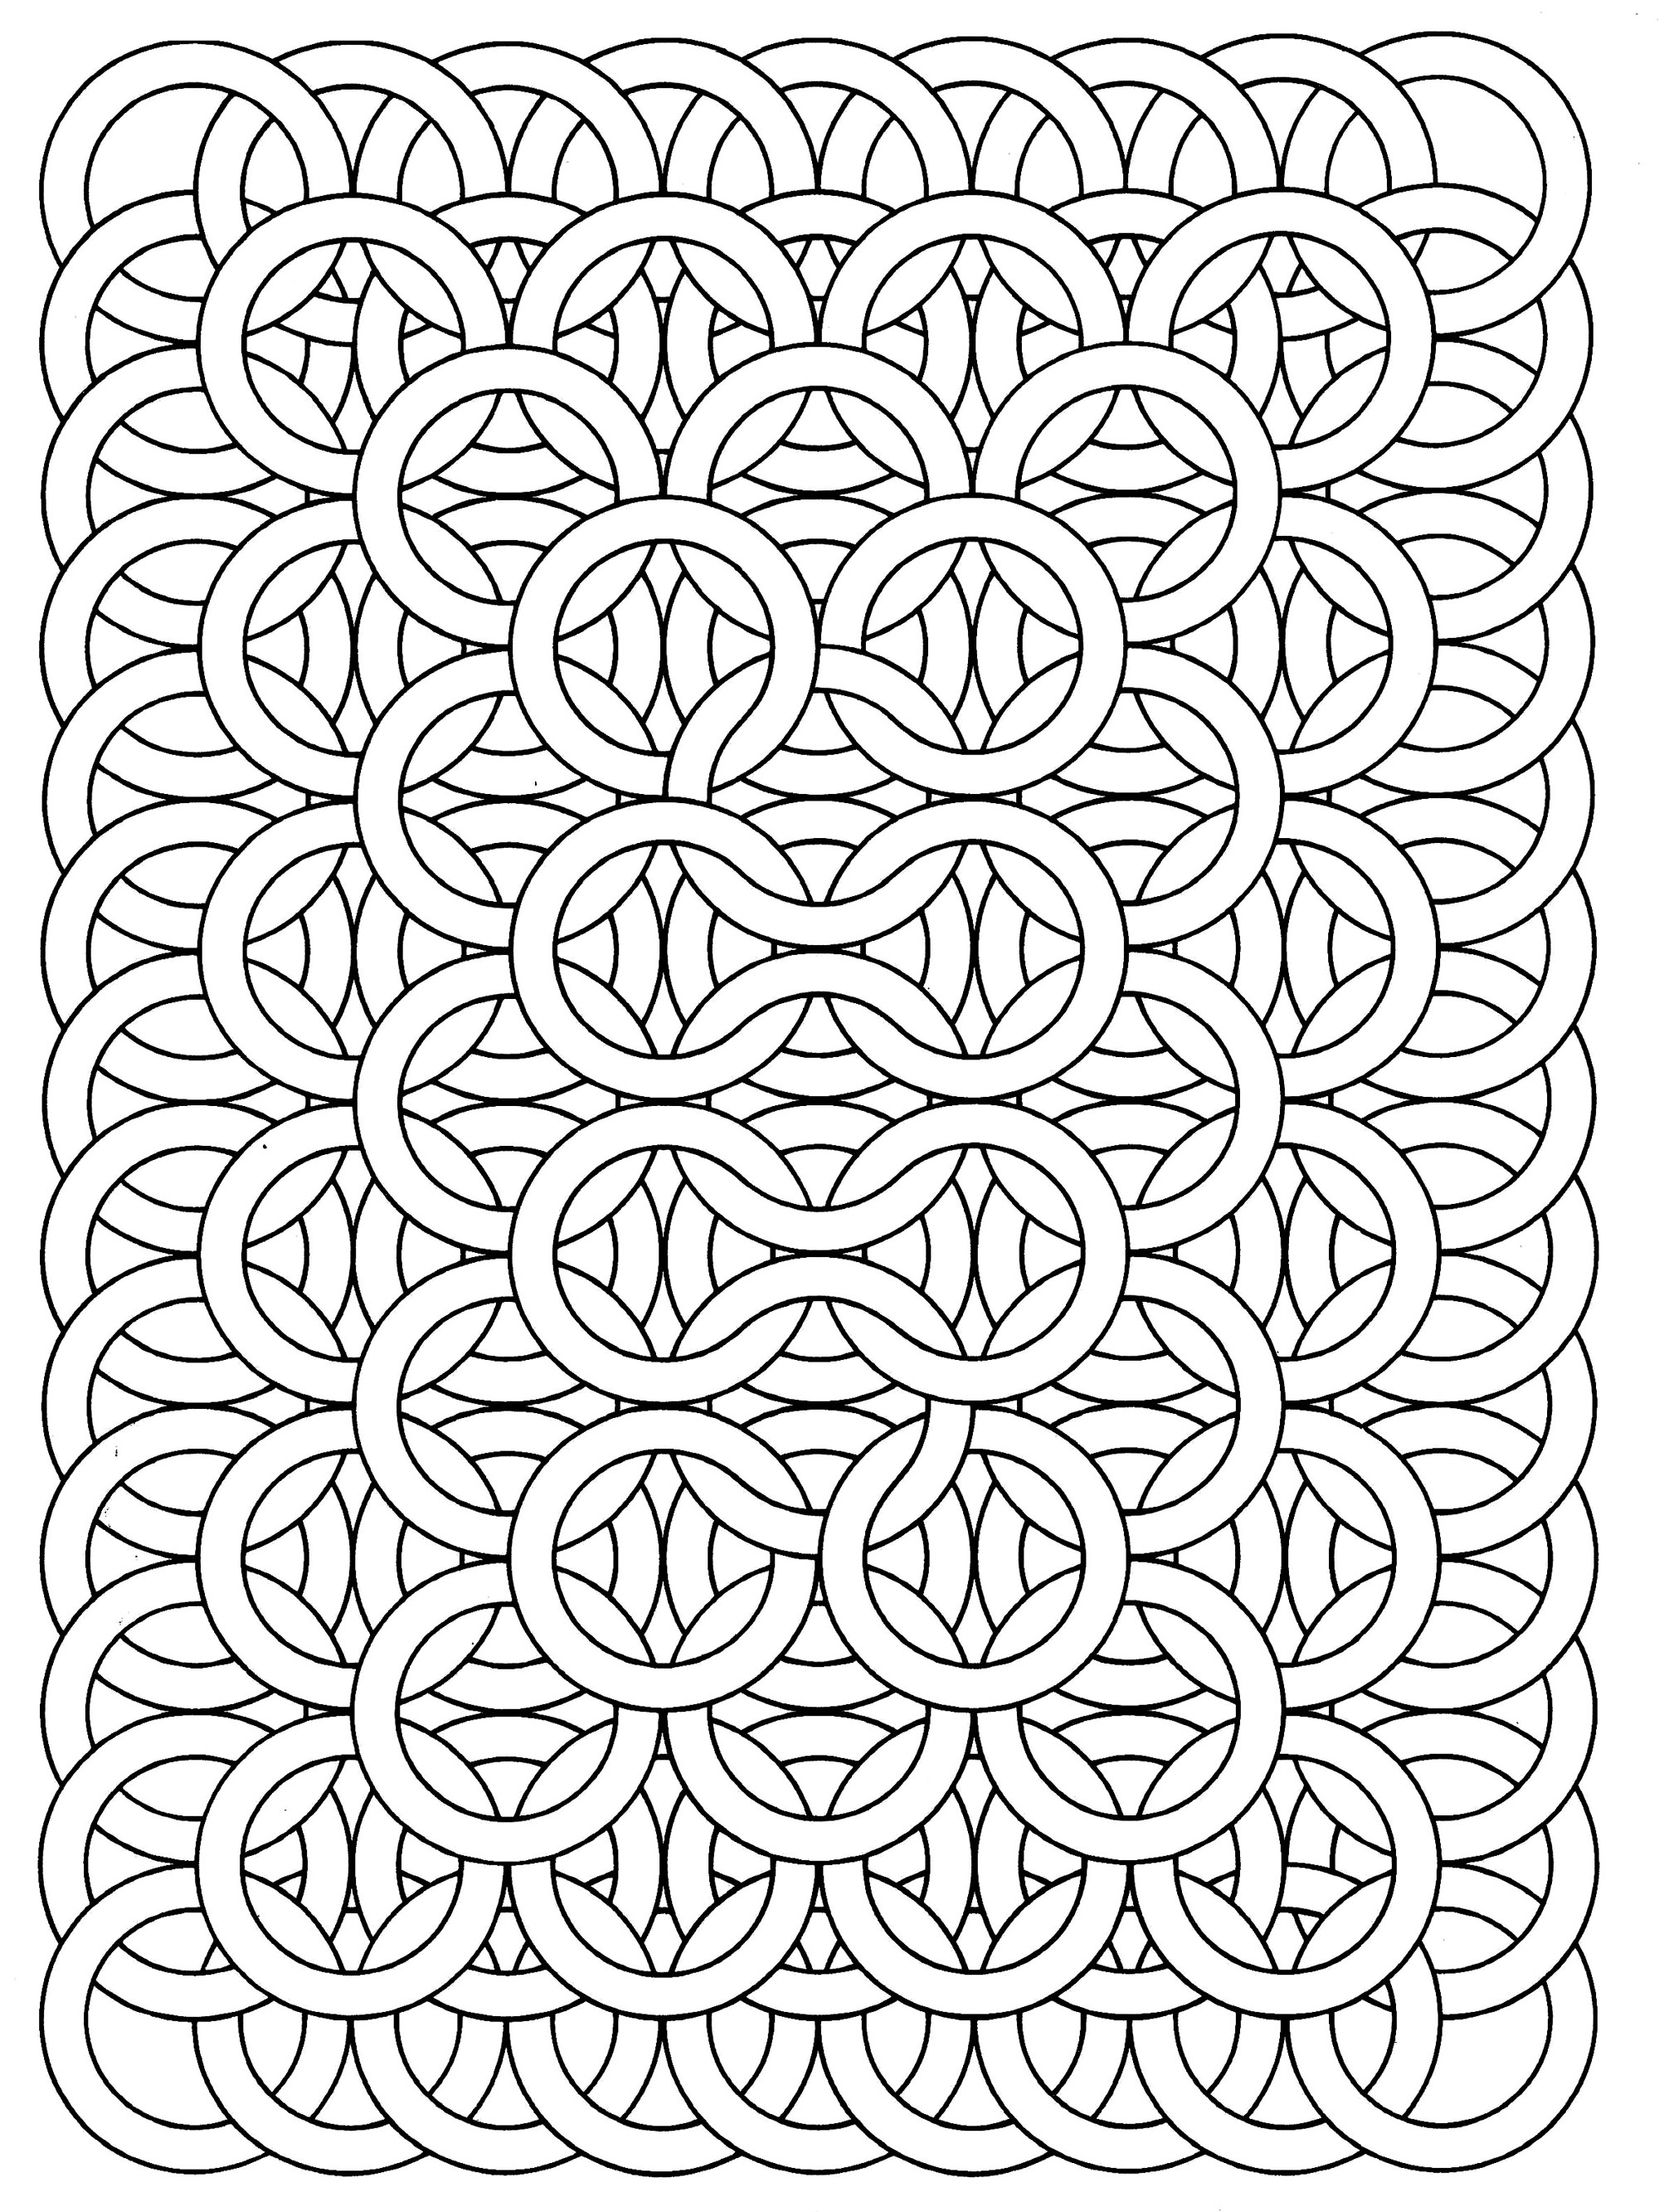 Printable coloring pages for adults interlinking rings coloring page